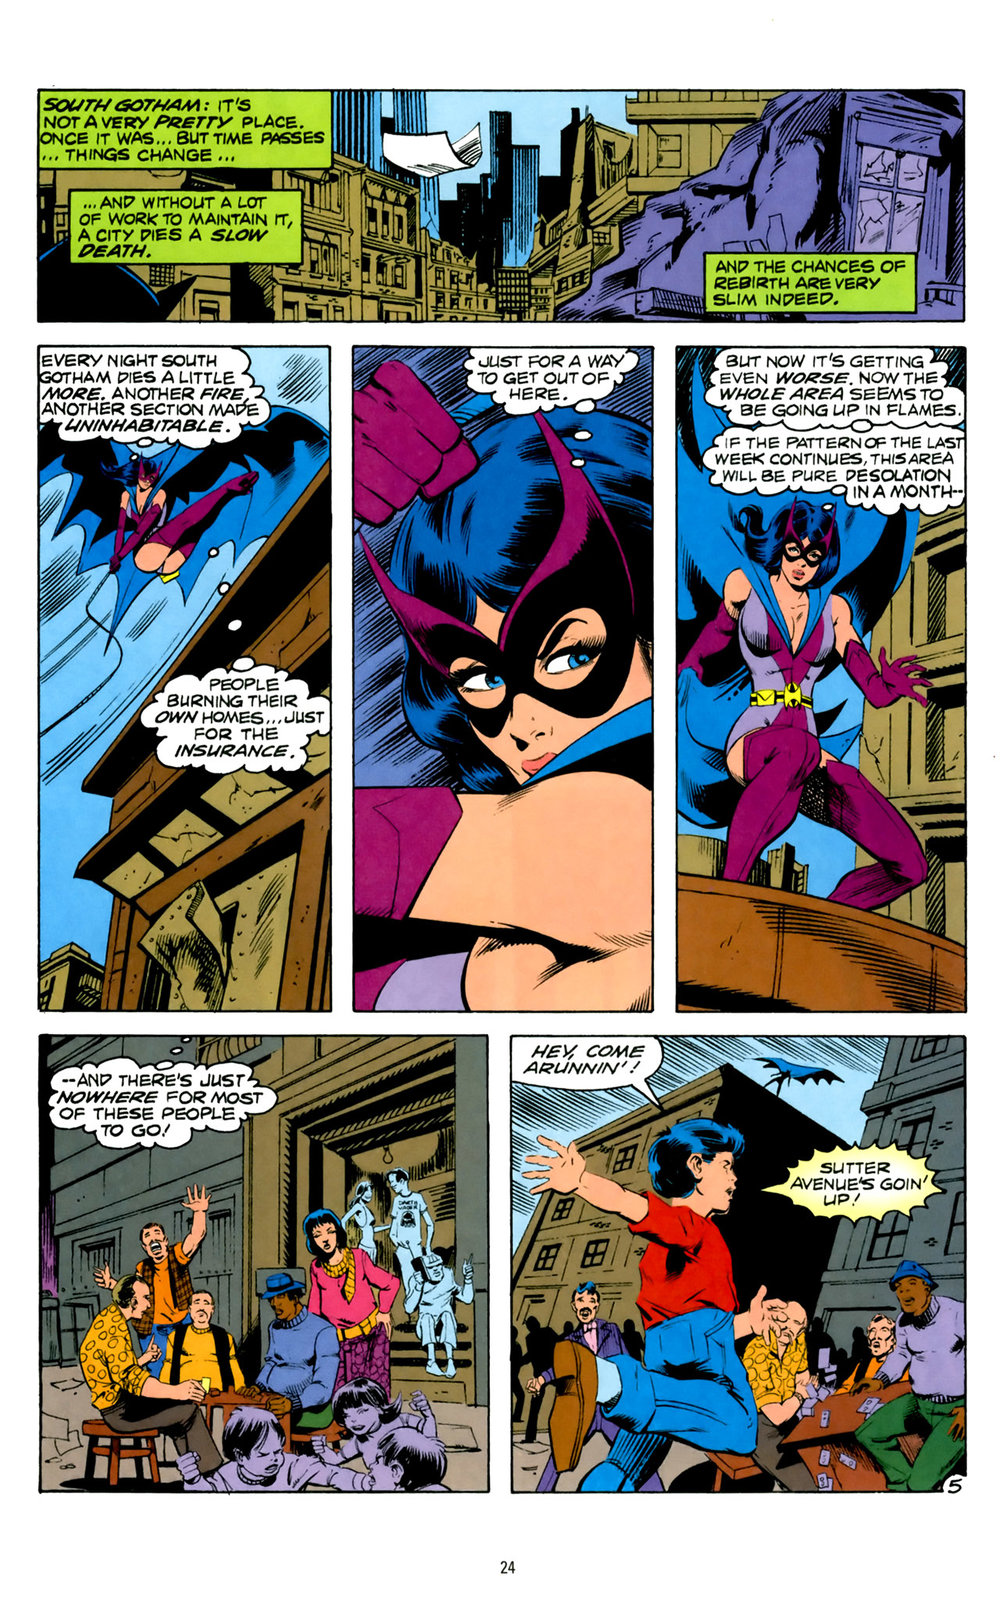 Classic Helena Wayne as The Huntress contemplates crime and its causes in South Gotham City.